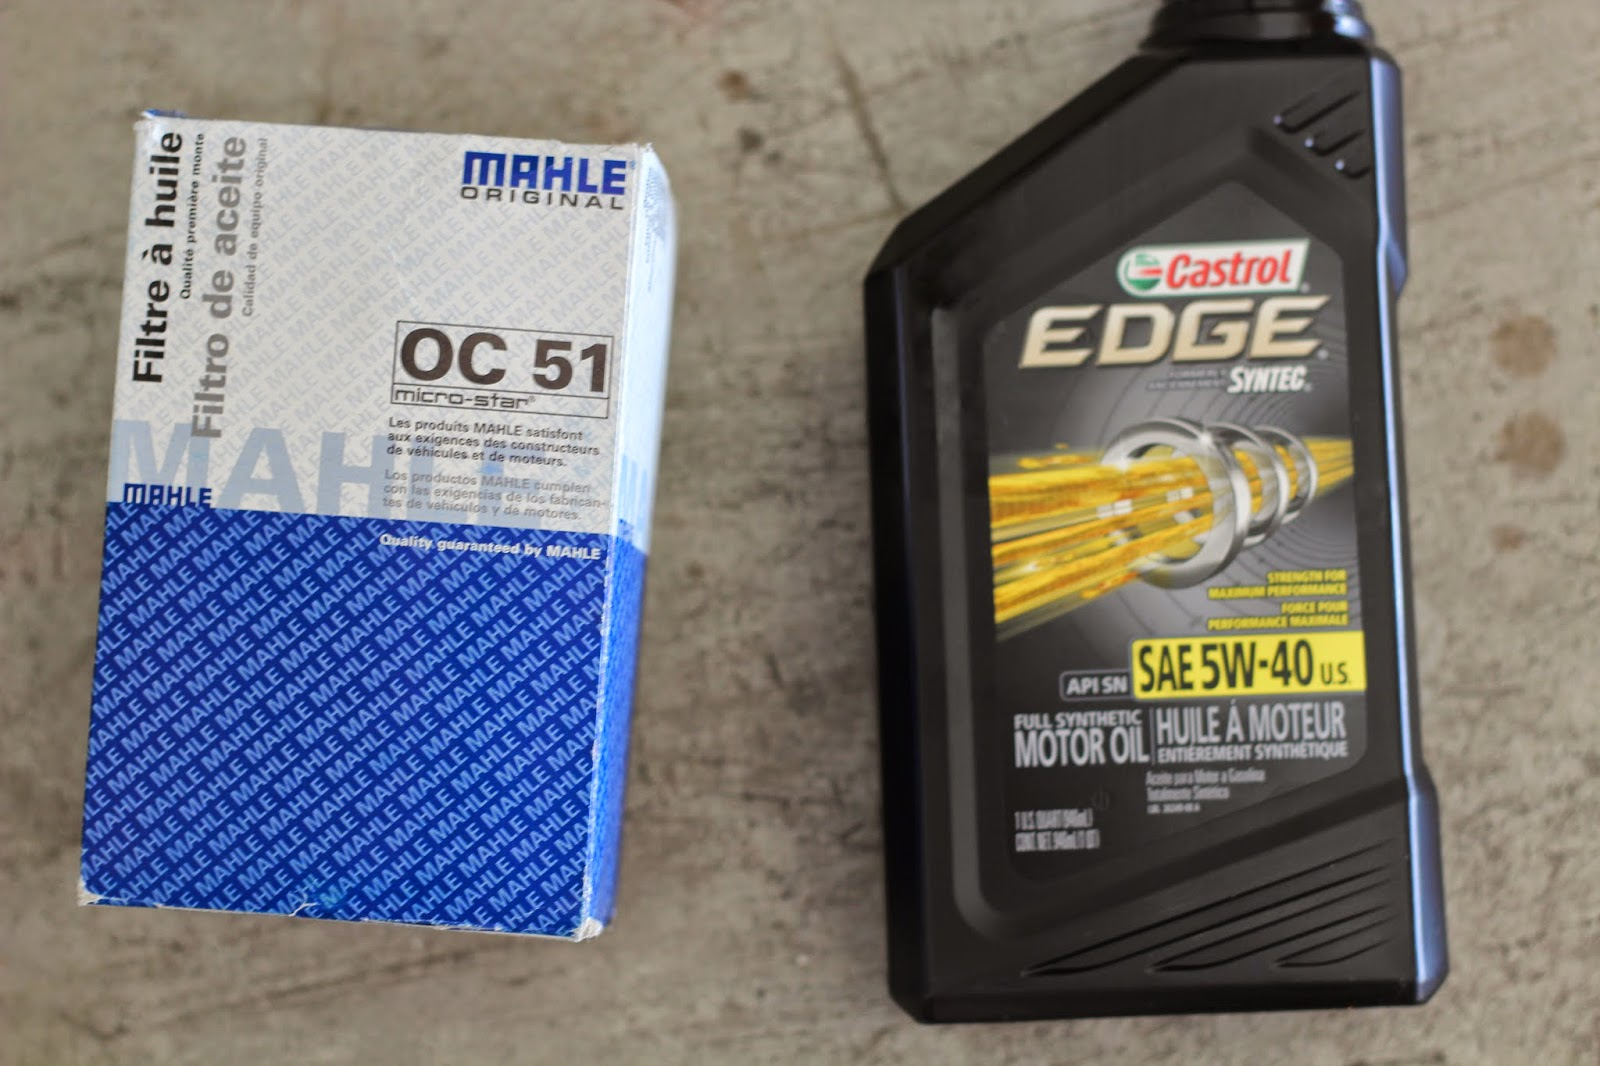 hight resolution of 5 i have been using oc 51 mahle filter and sae 5w 40 castrol take new filter and dip screw driver into fresh oil lubricate the rubber seal on the